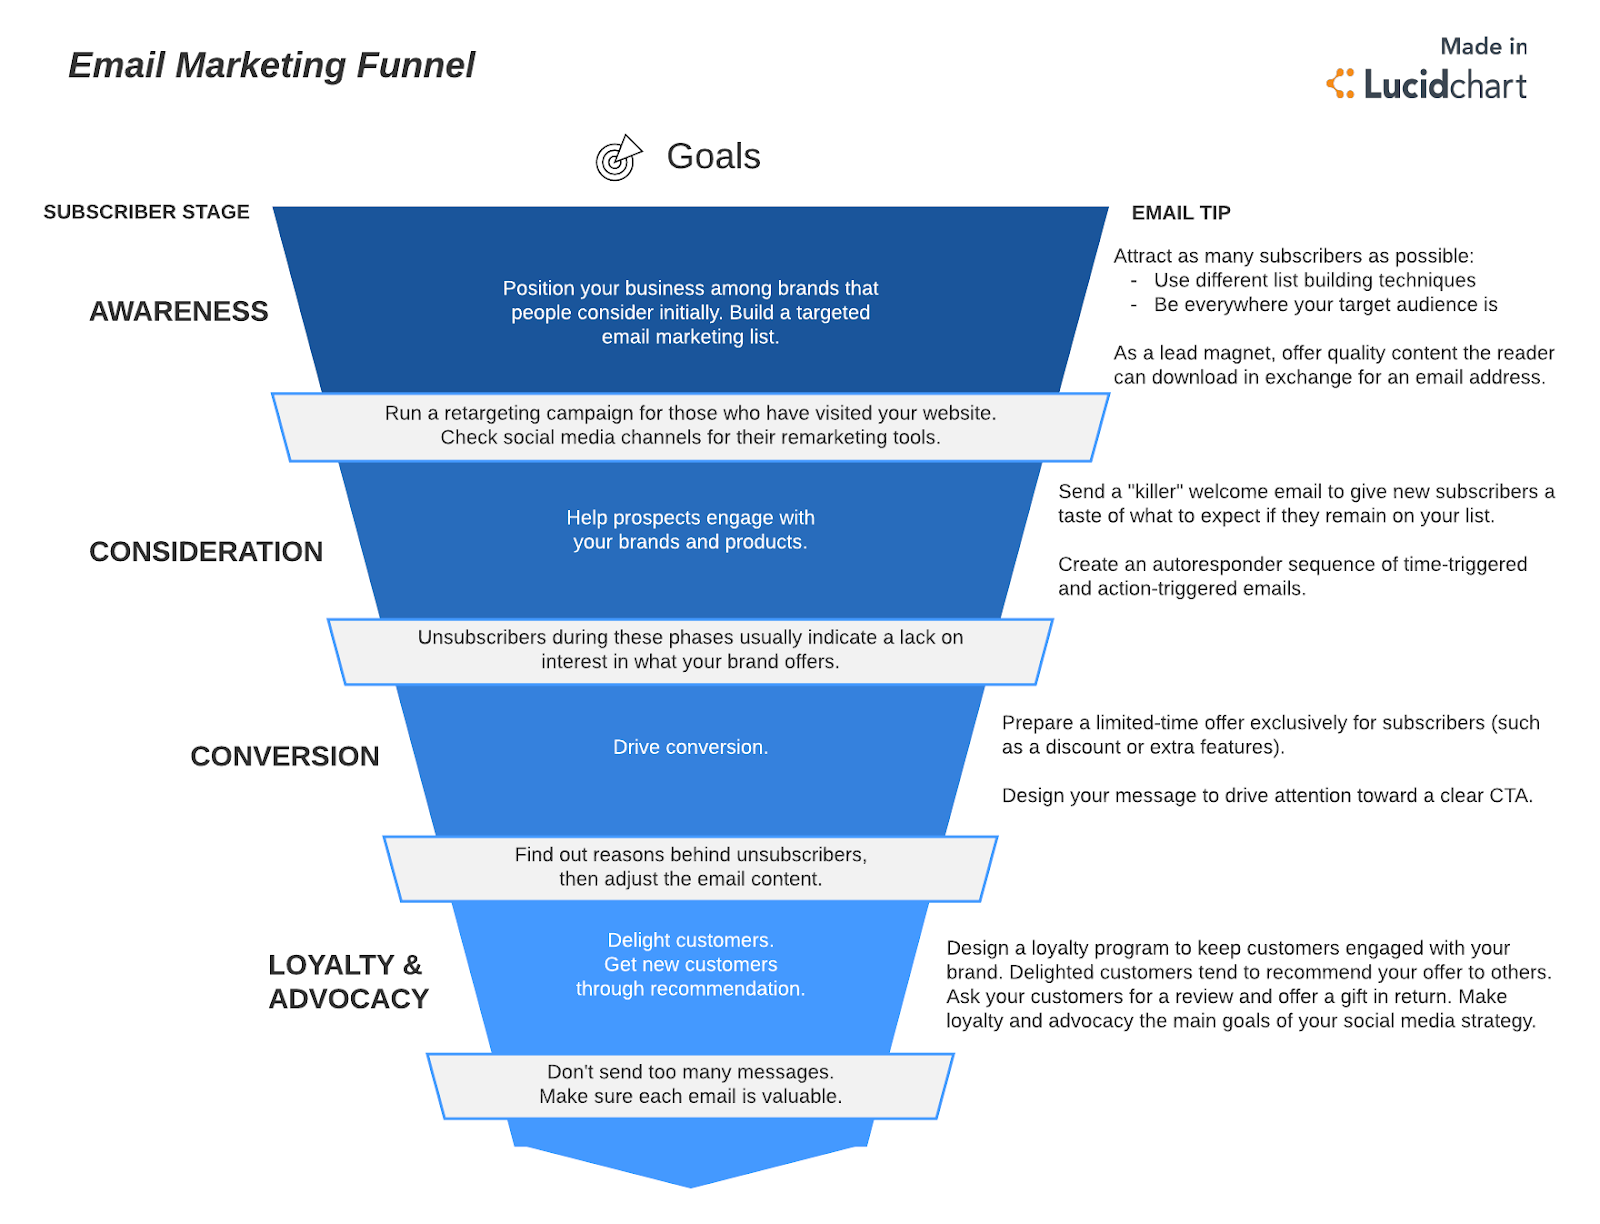 Email marketing funnel by Lucidchart